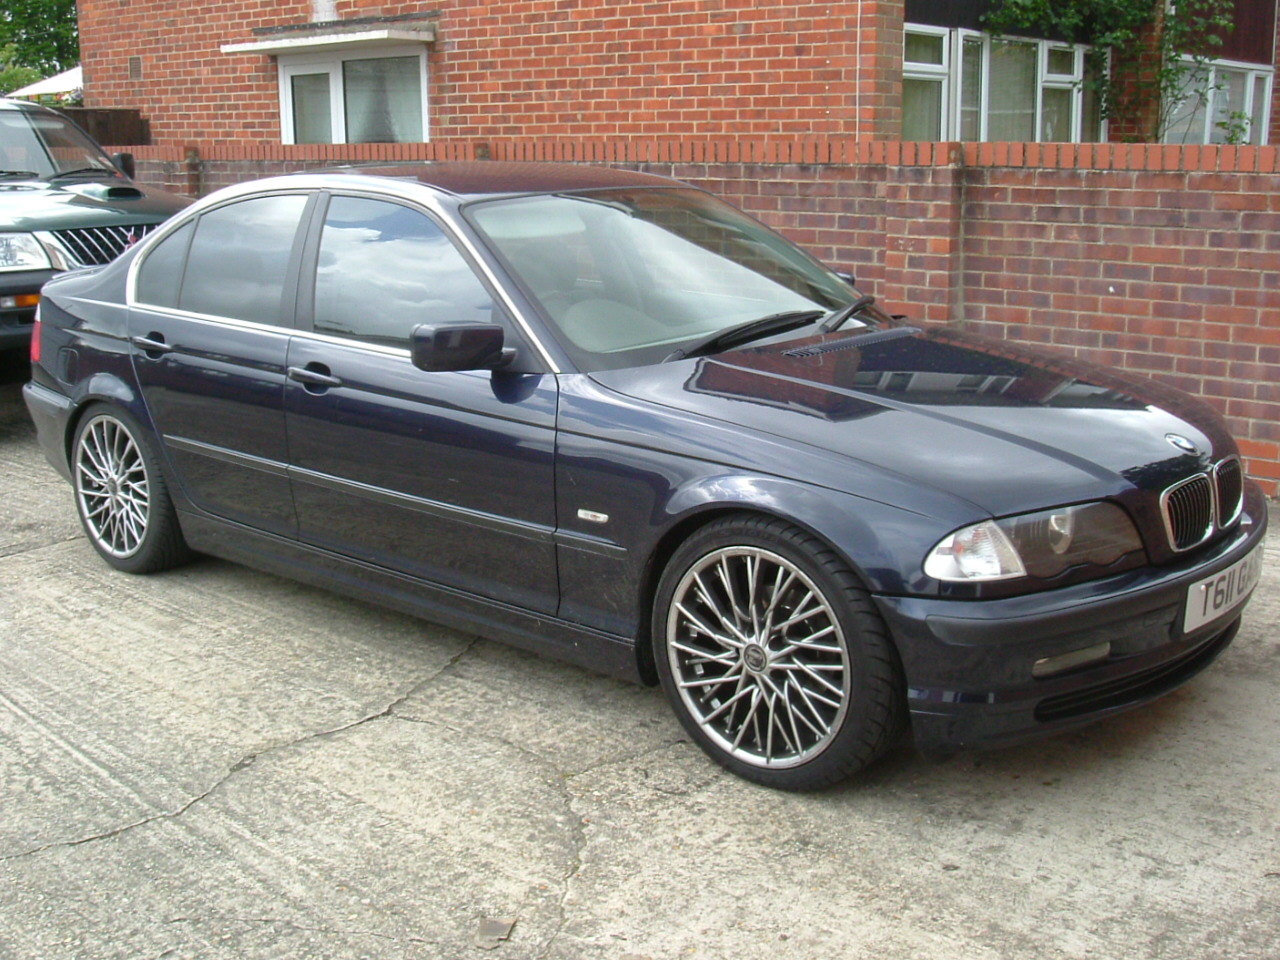 BMW 3 series 325i 2000 photo - 2